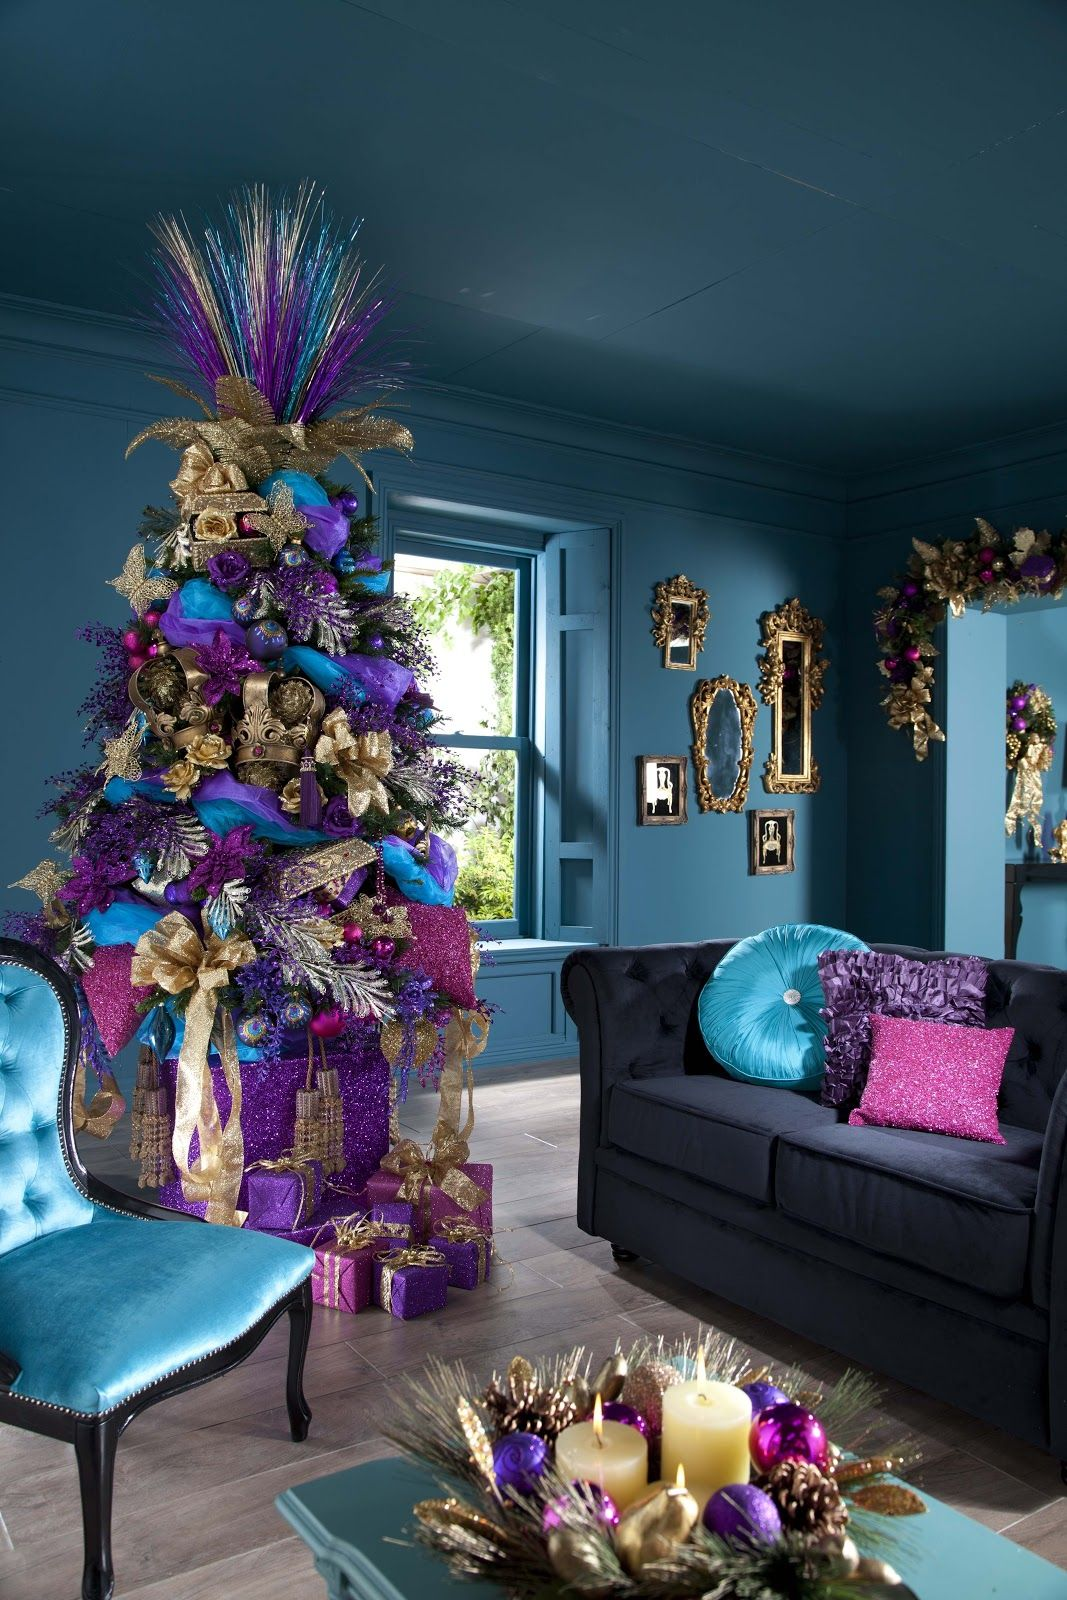 White christmas tree with purple and blue decorations - Unique Festive Colorful Purple Blue Pink And Gold Christmas Tree And Interior Living Room Holiday Decoration Ideas Festive Merry Christmas Tree Holiday